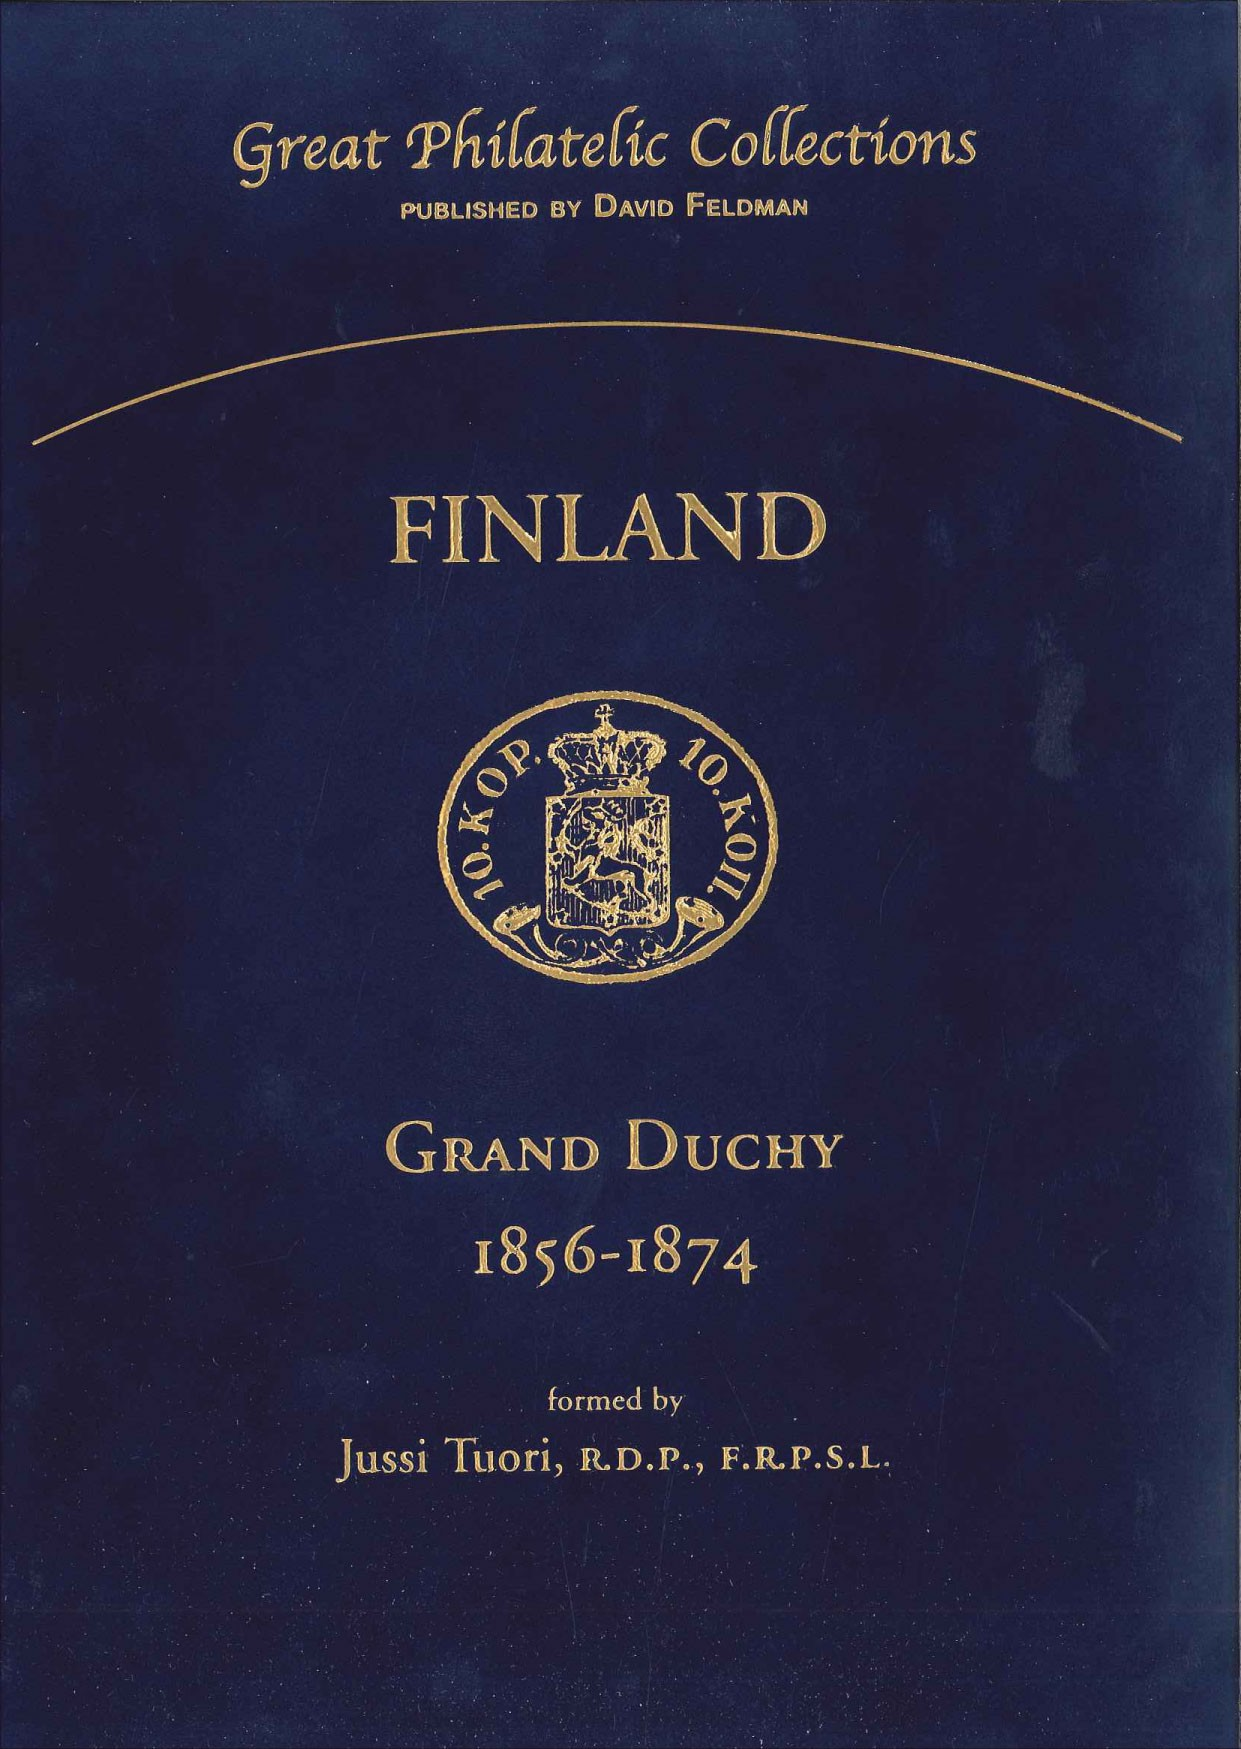 Great Philatelic Collections, philatelic book Finland